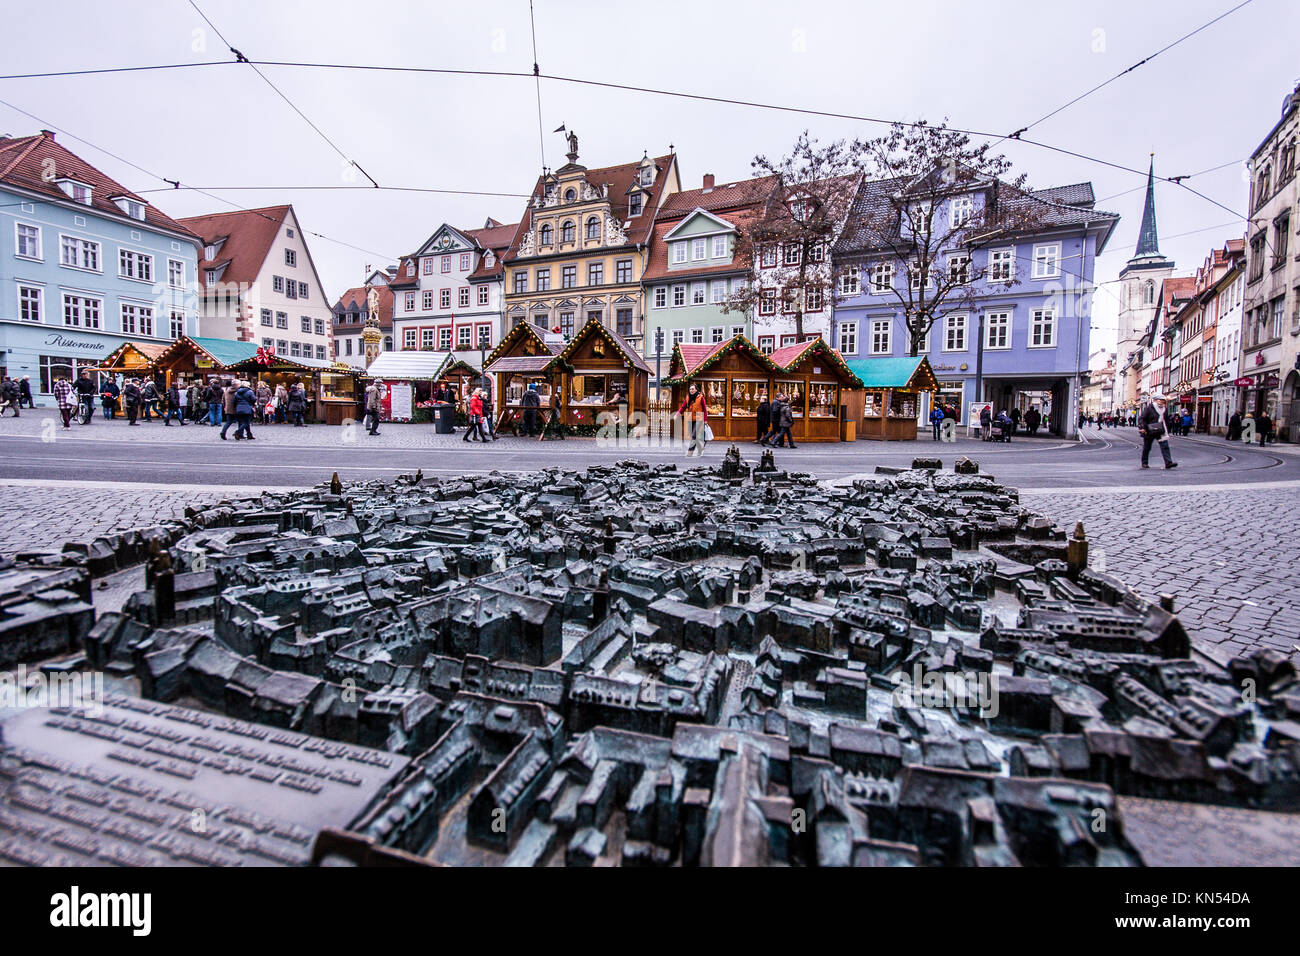 erfurt city center map The world